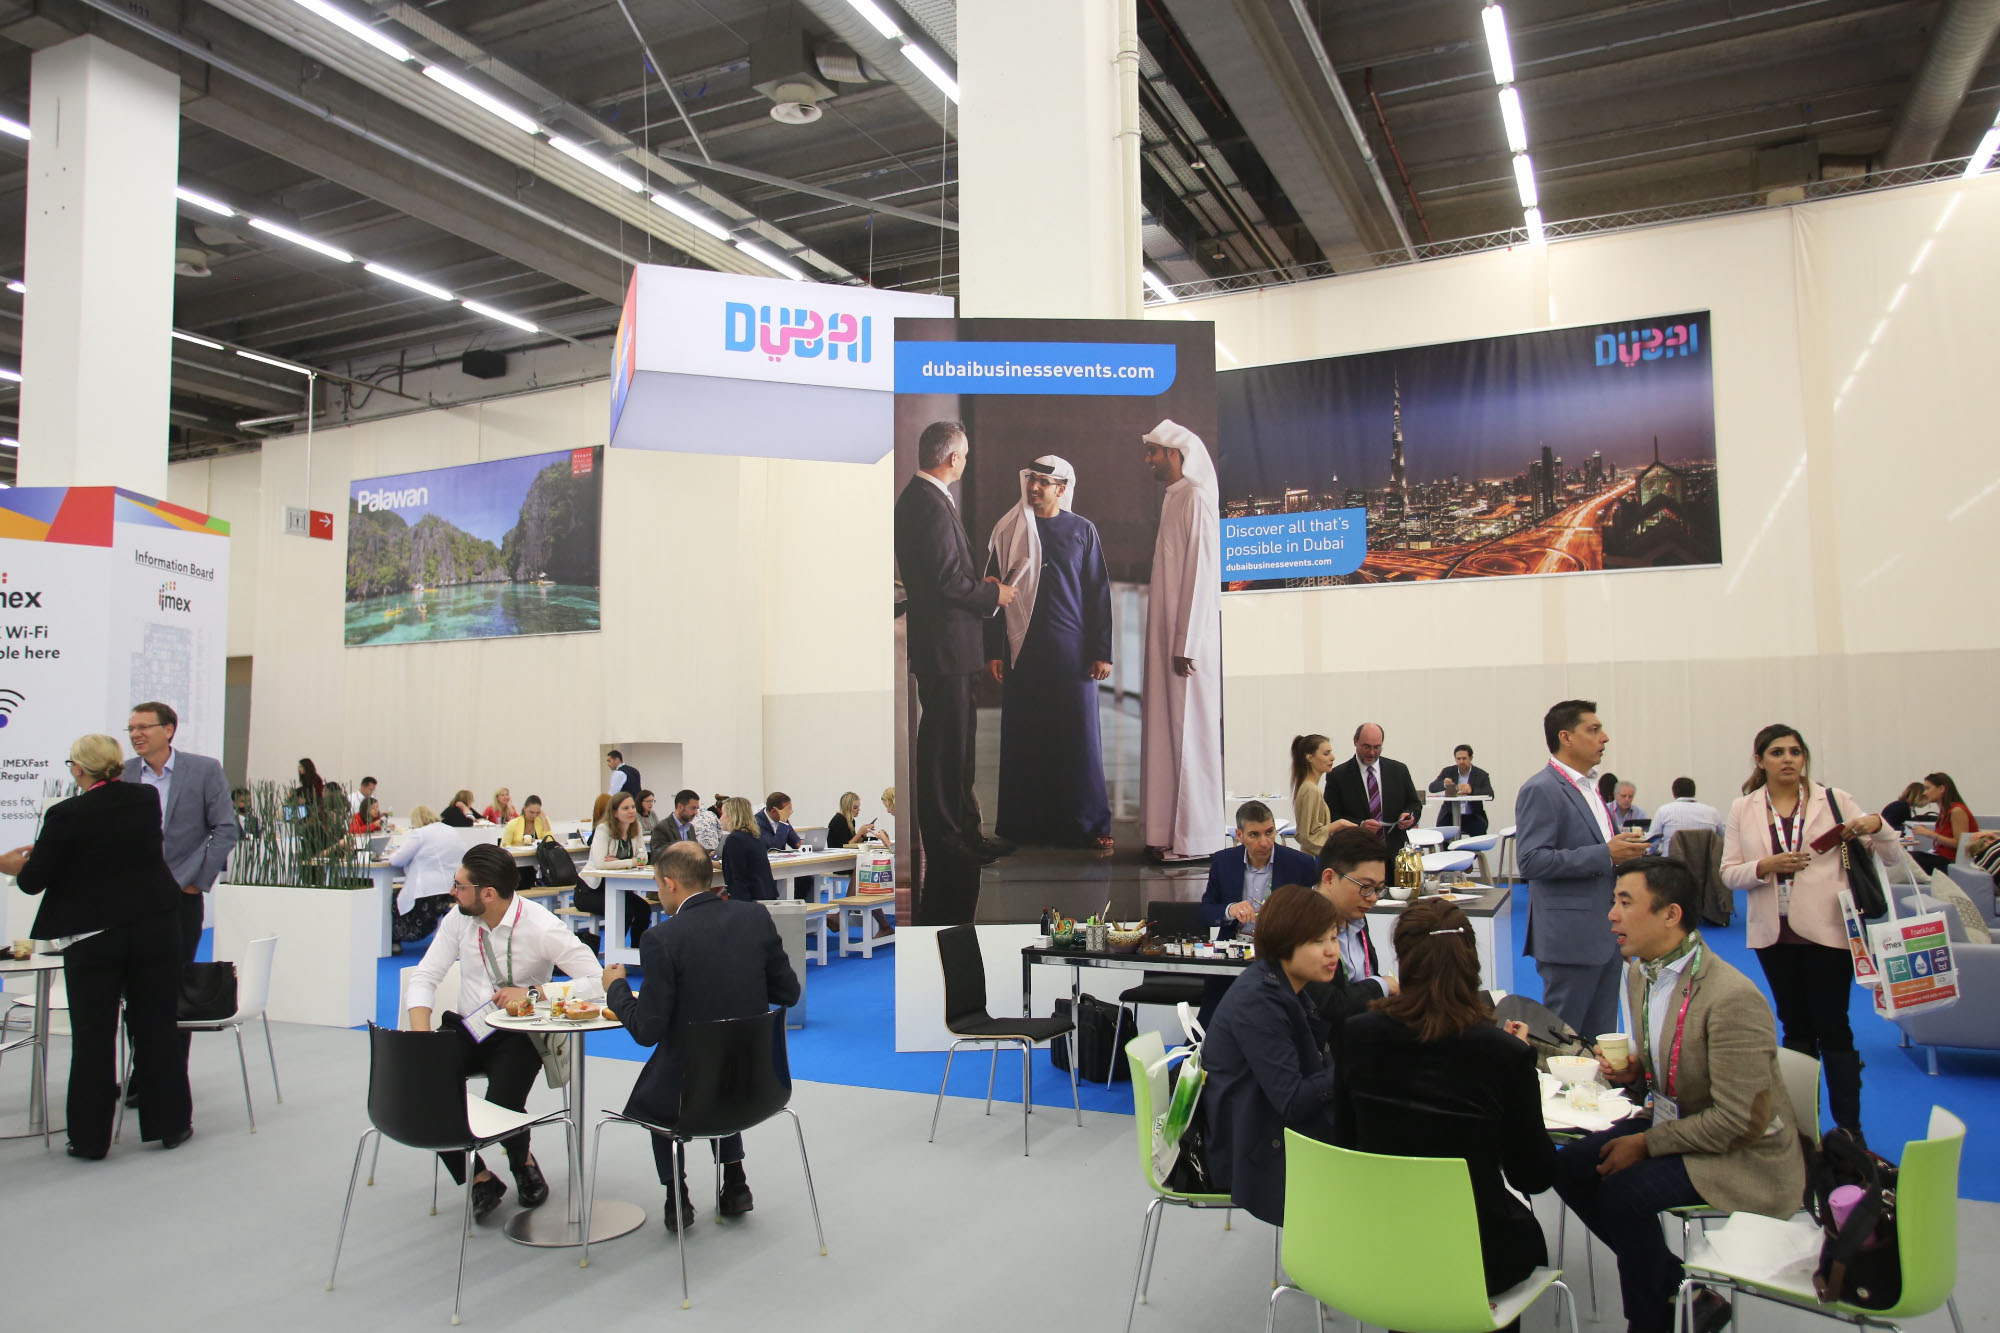 dubai brings strong business events presence  2